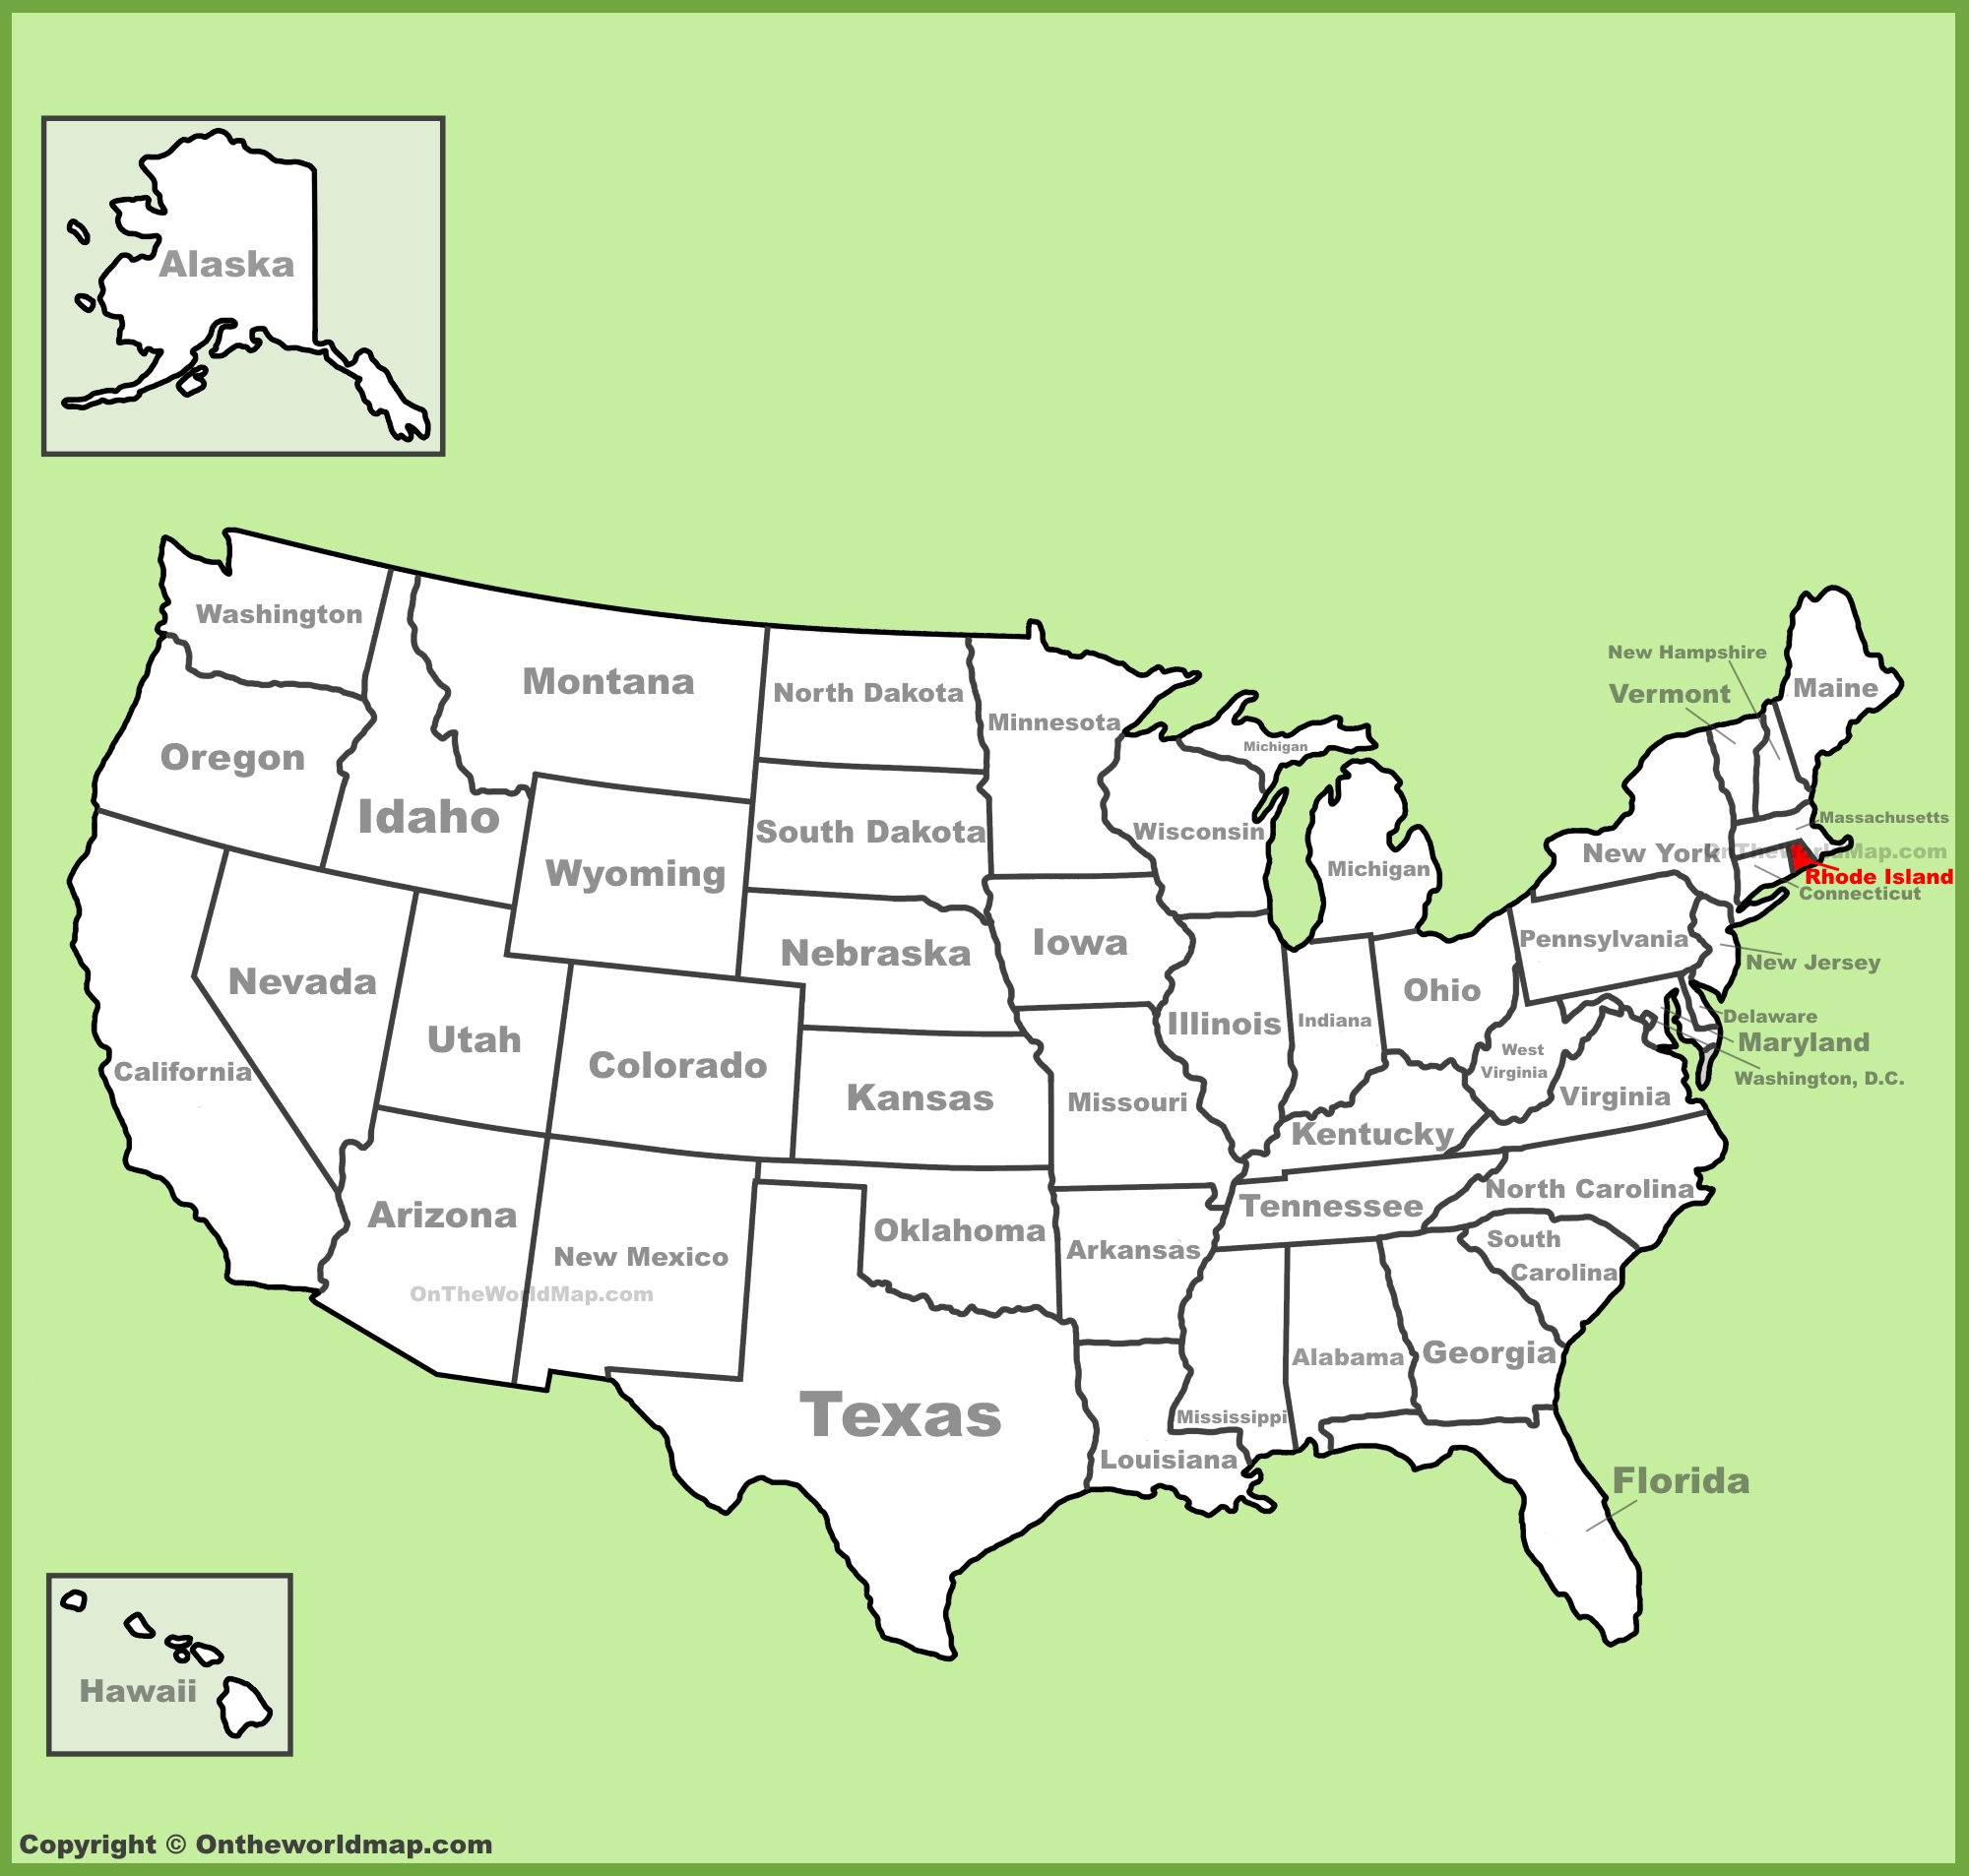 Rhode Island Location On The US Map - Rhode island us map